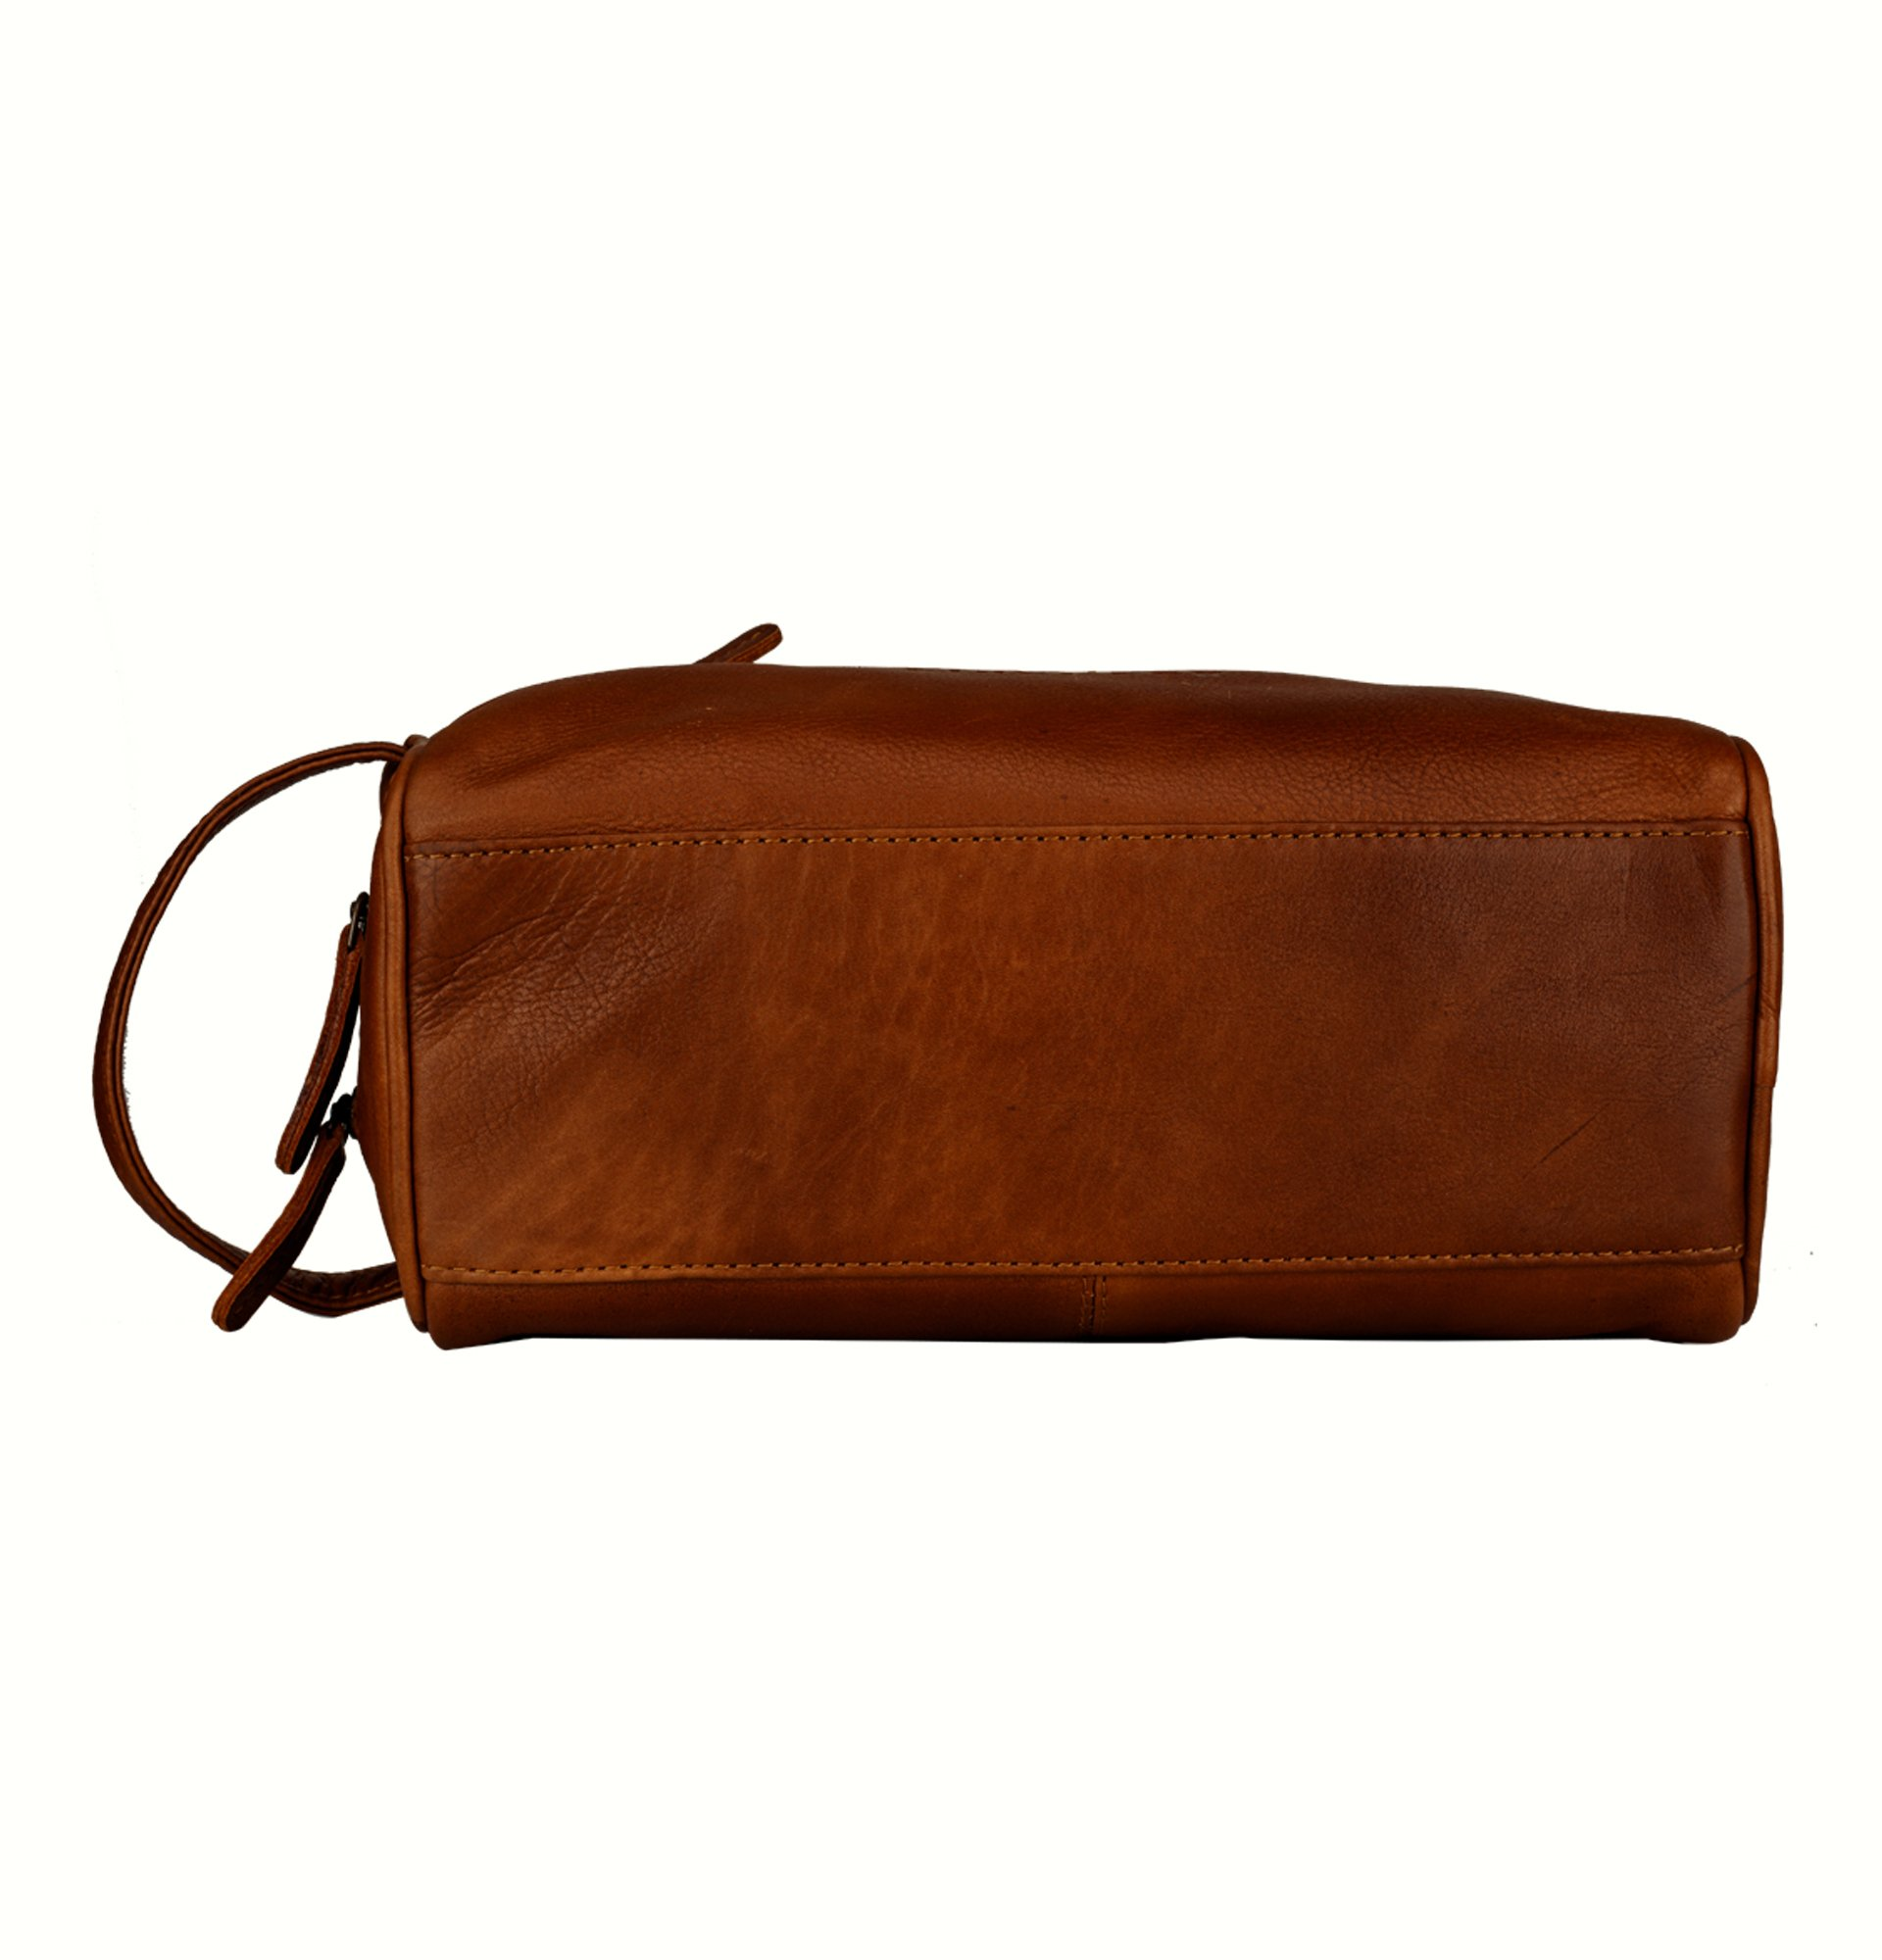 Finelaer Men Brown Leather Toiletry Travel Dopp Bag by FINELAER (Image #5)